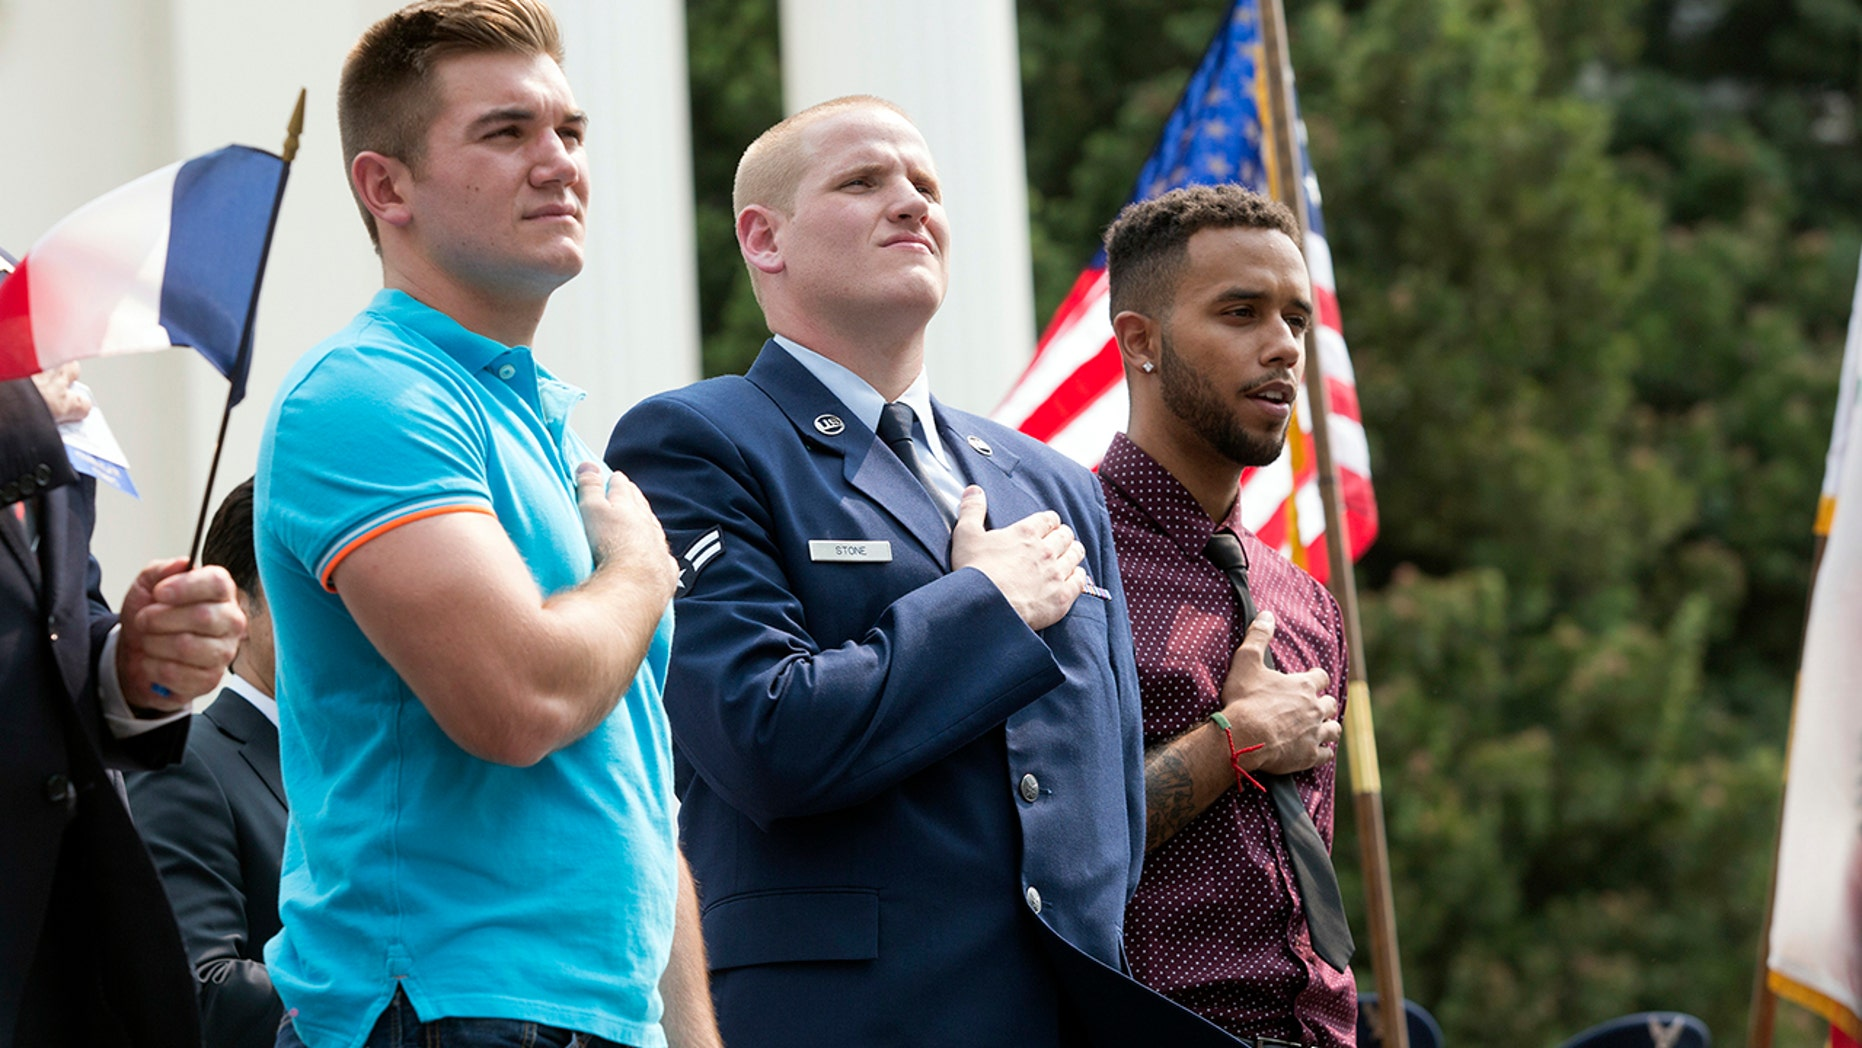 """In this Sept. 11, 2015 file photo, Oregon National Guardsman Alek Skarlatos, left, U.S. Airman Spencer Stone, center, and Anthony Sadler attend a parade held to honor the three Americans who stopped a gunman on a Paris-bound passenger train, in Sacramento, Calif. The three Sacramento-area men who thwarted a terror attack on a French train in 2015 will play themselves in a Clint Eastwood-directed film about their heroic feat. Sadler, Skarlatos, and Stone will star in """"15:17 to Paris,"""" which began production this week."""